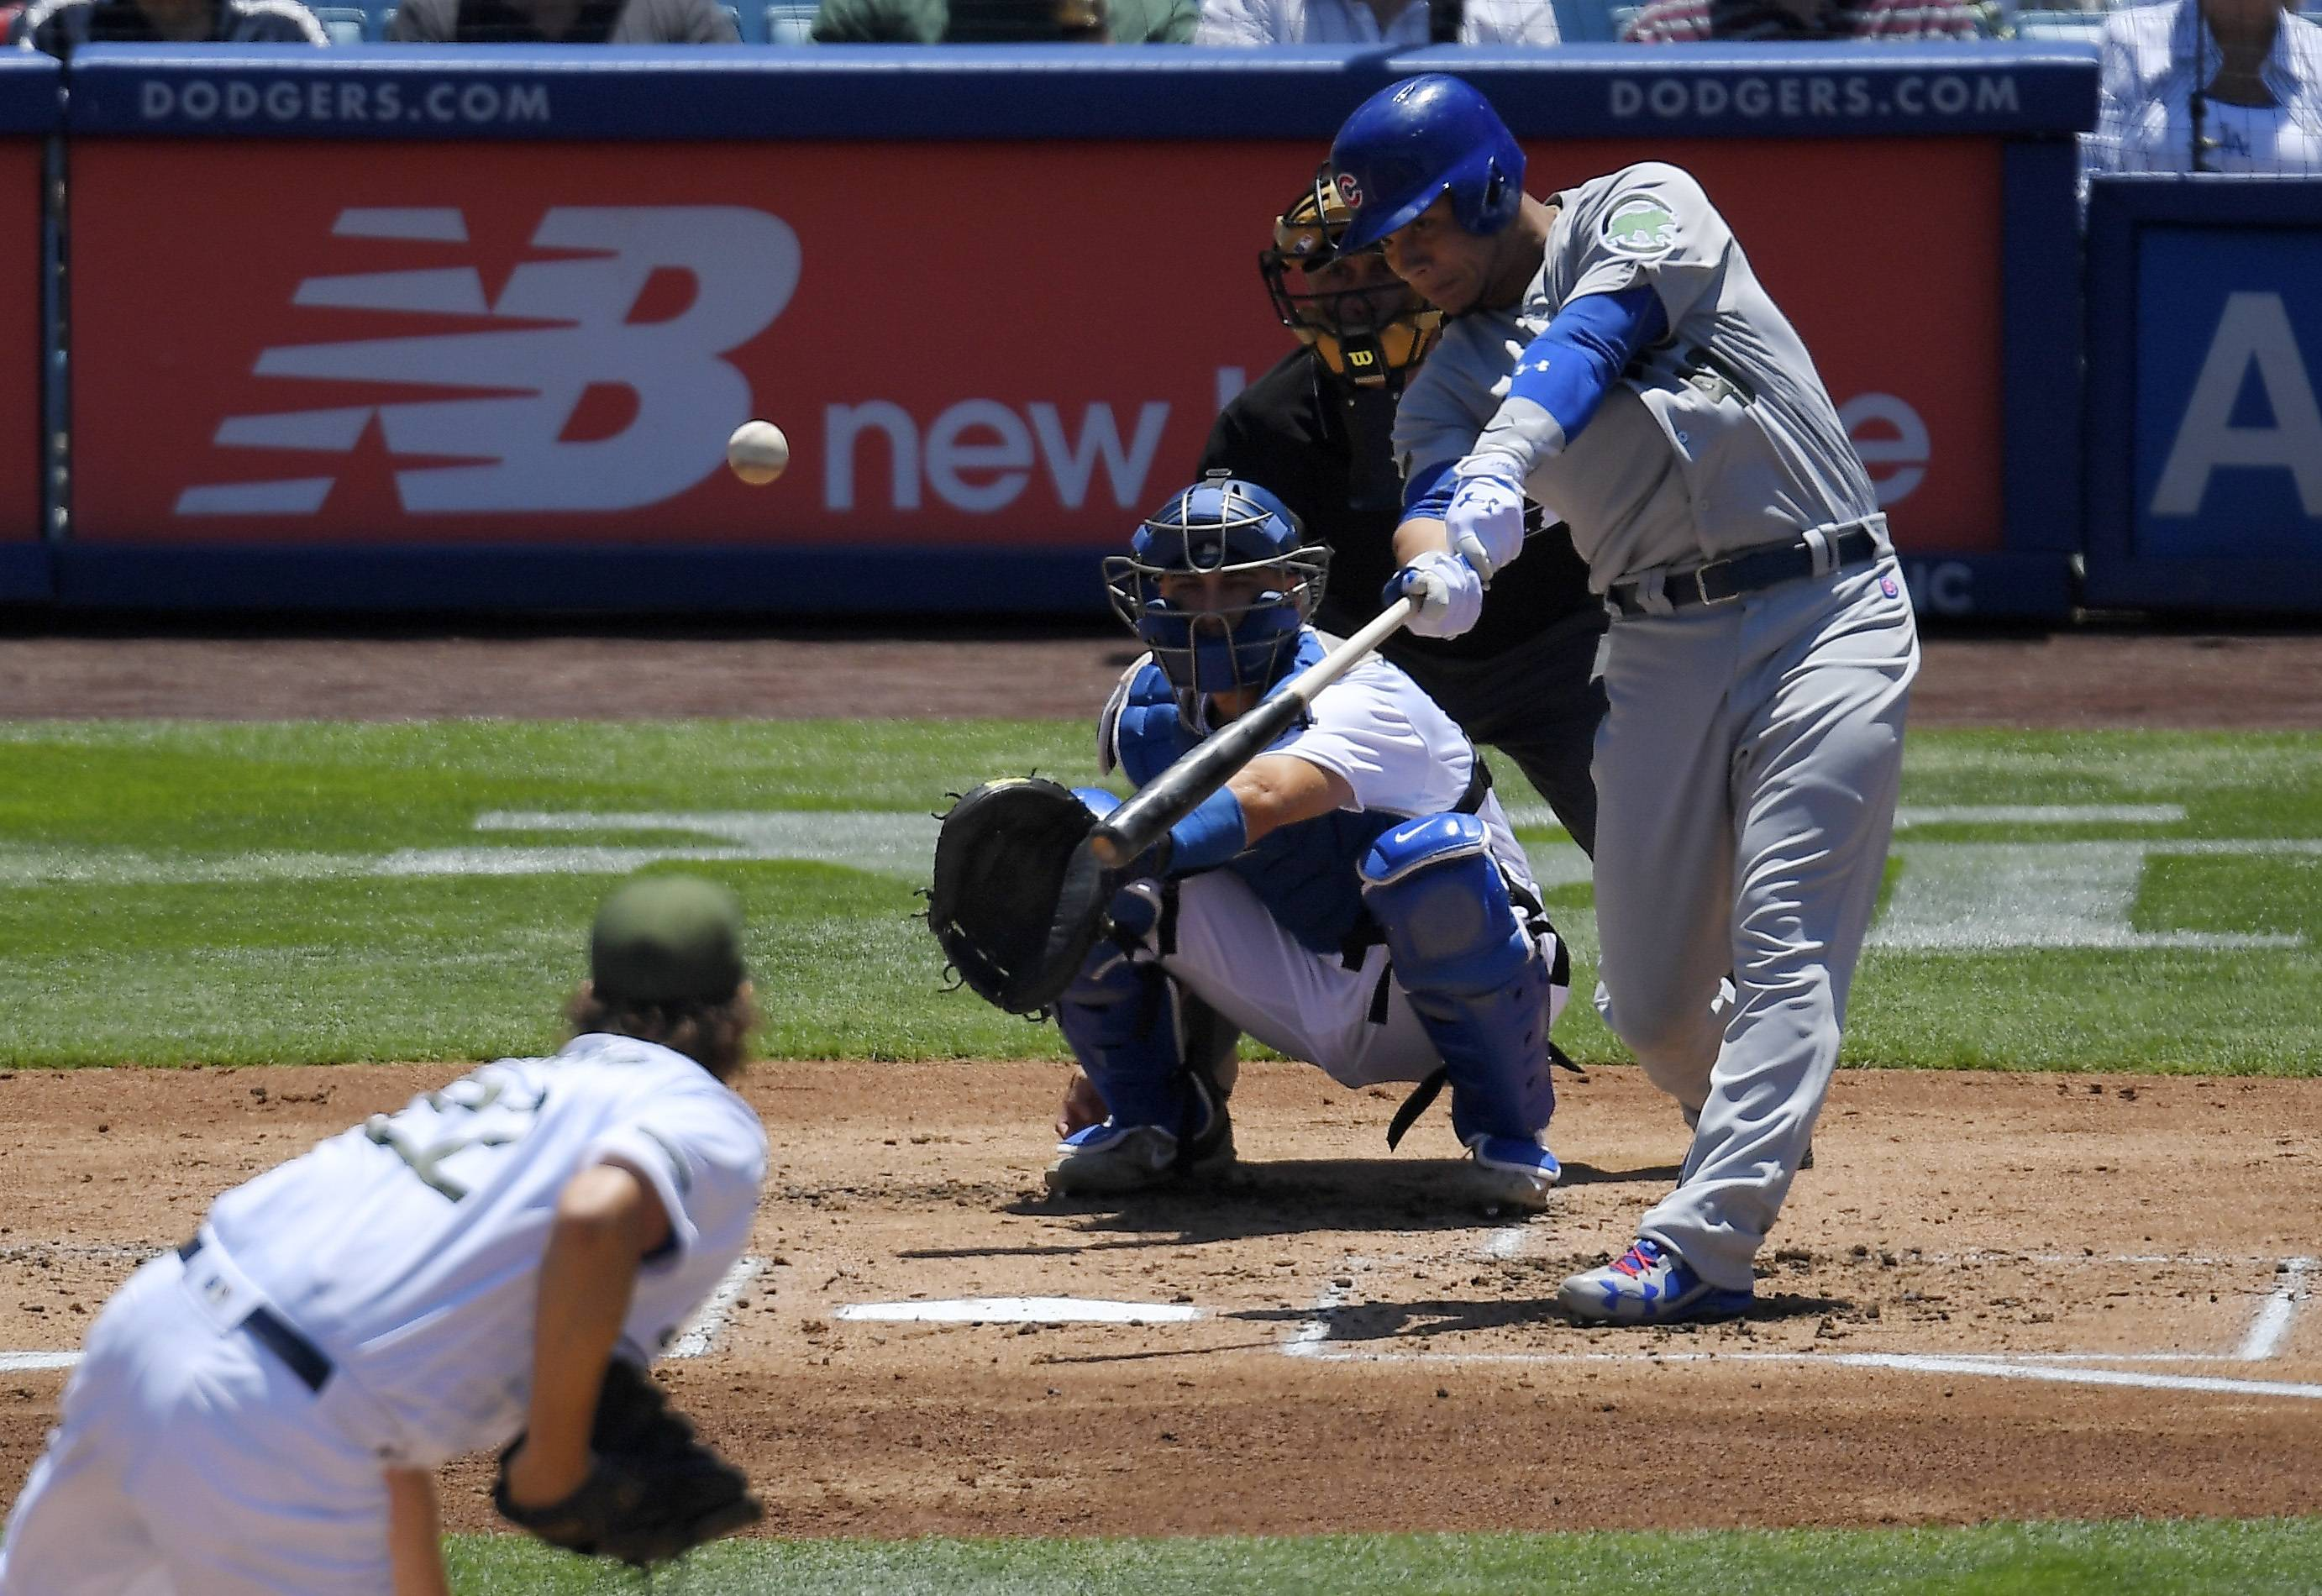 Chicago Cubs' Willson Contreras, right, hits a solo home run as Los Angeles Dodgers starting pitcher Clayton Kershaw, left, watches along with catcher Austin Barnes, second from left, and home plate umpire Dan Iassogna during the second inning of a baseball game, Sunday, May 28, 2017, in Los Angeles.